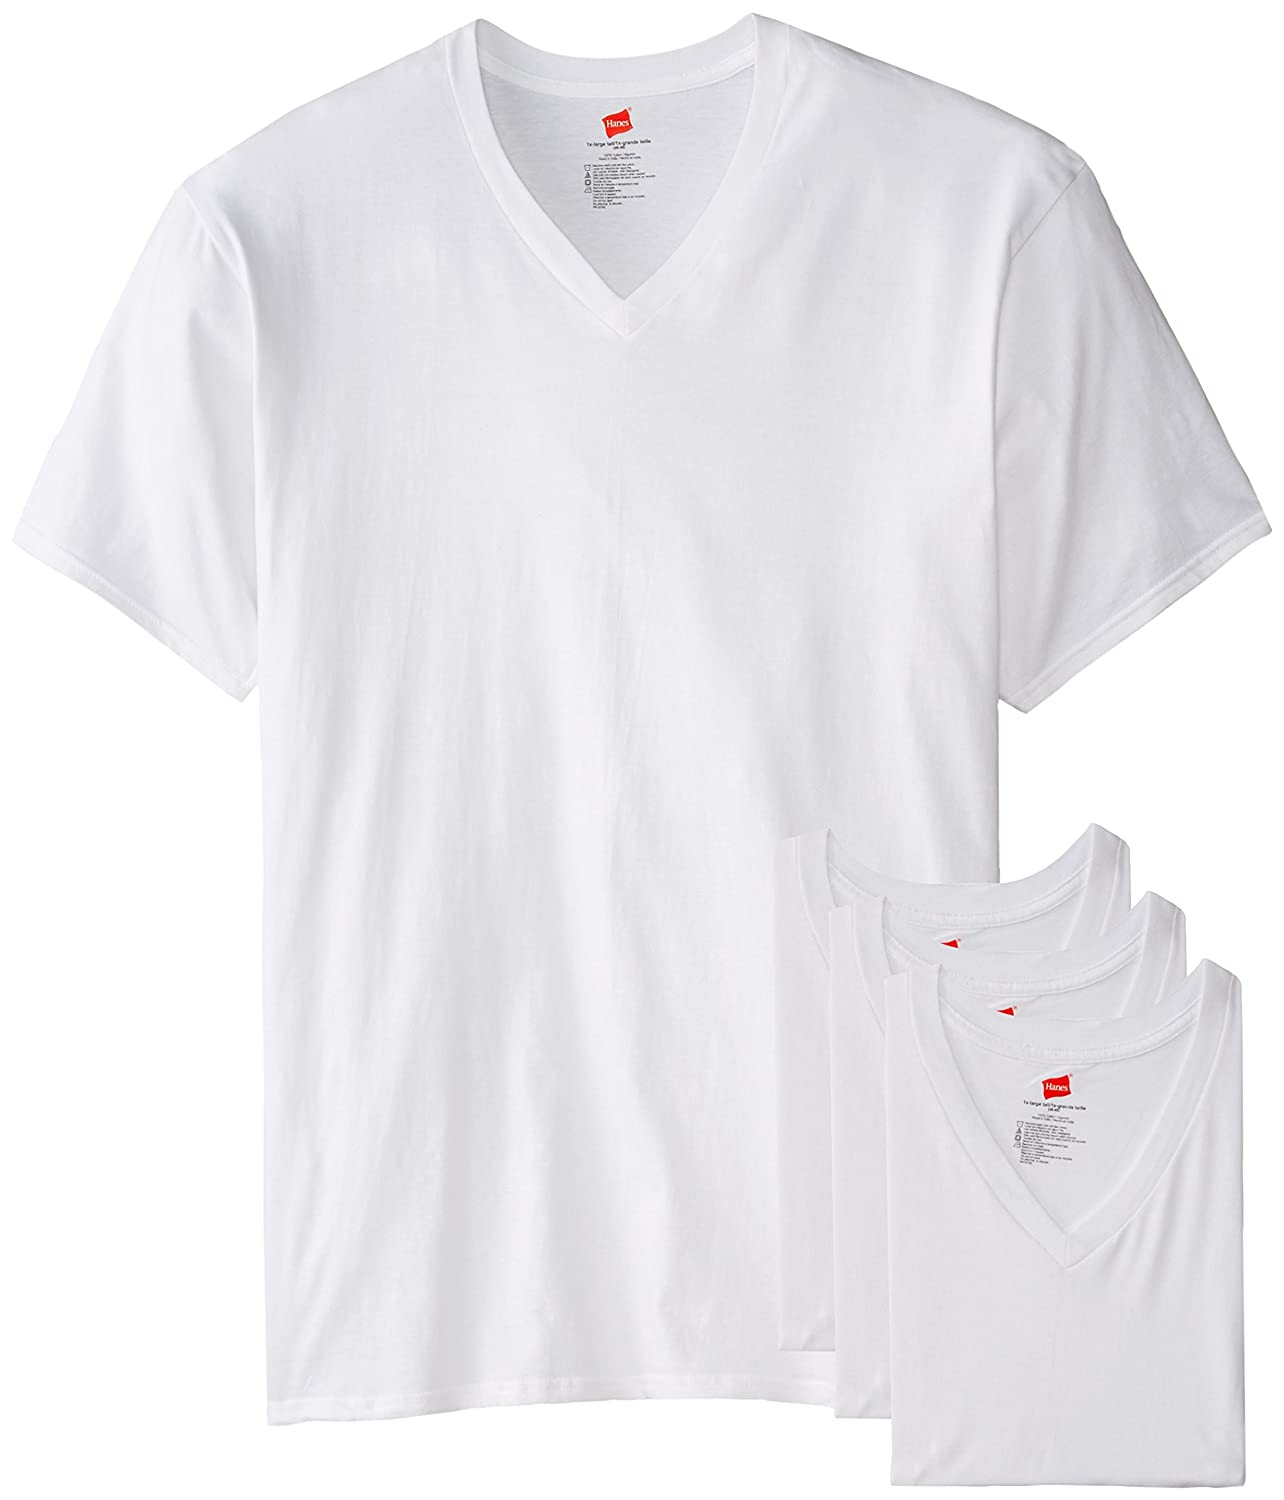 faf2a0ed012d2 Hanes Xl Tall T Shirts – EDGE Engineering and Consulting Limited